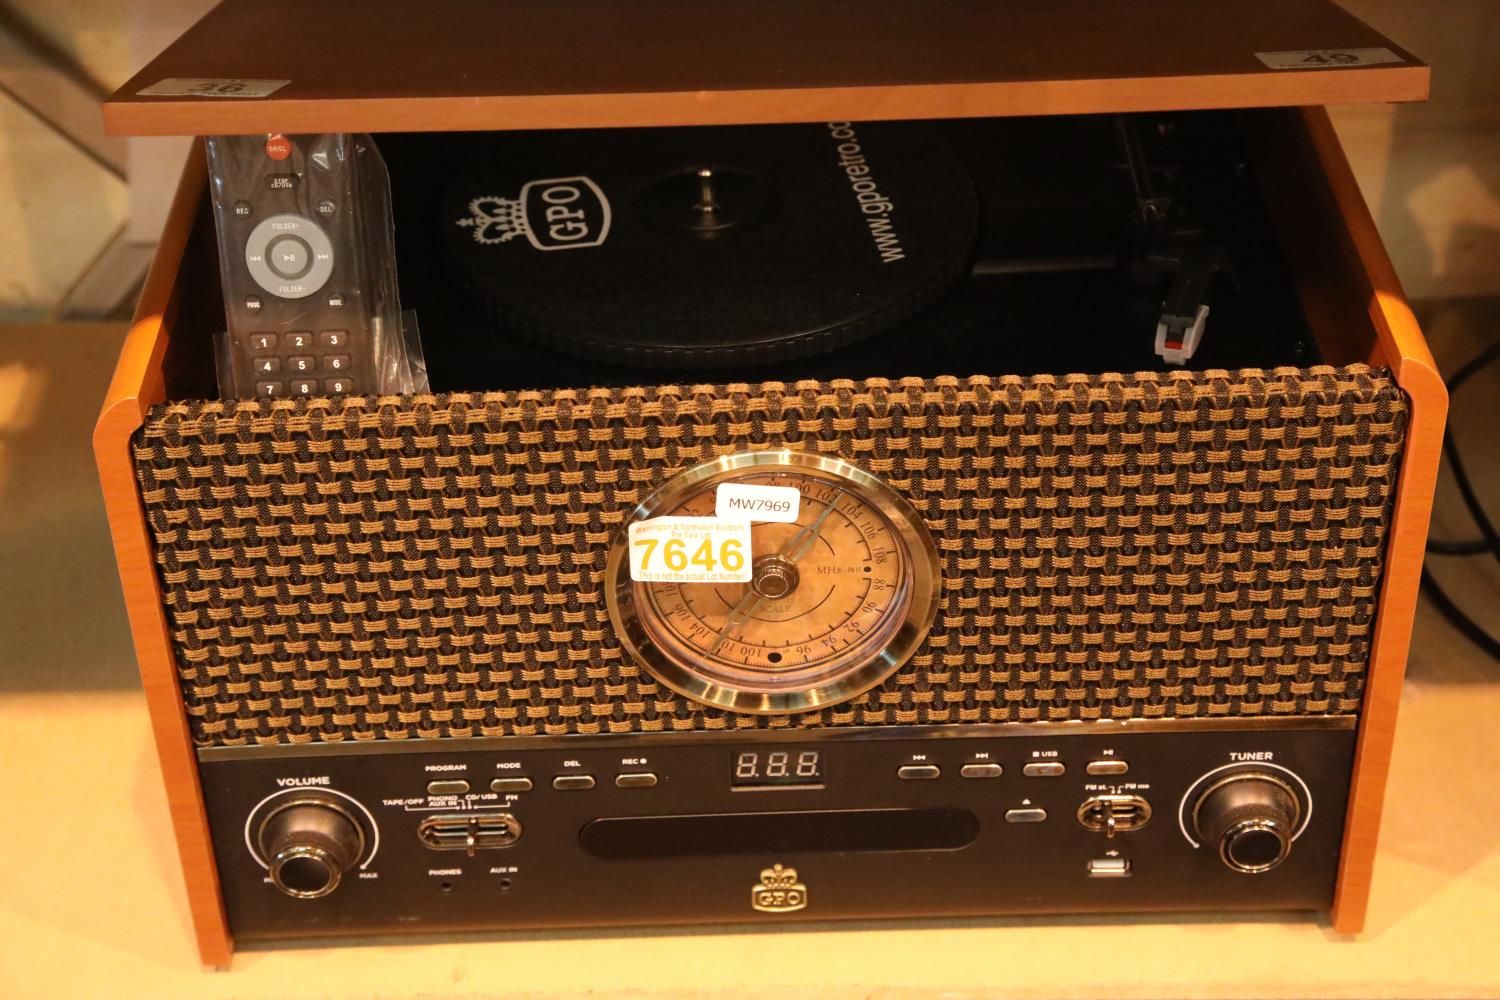 GPO Chesterton music system. Not available for in-house P&P, contact Paul O'Hea at Mailboxes on